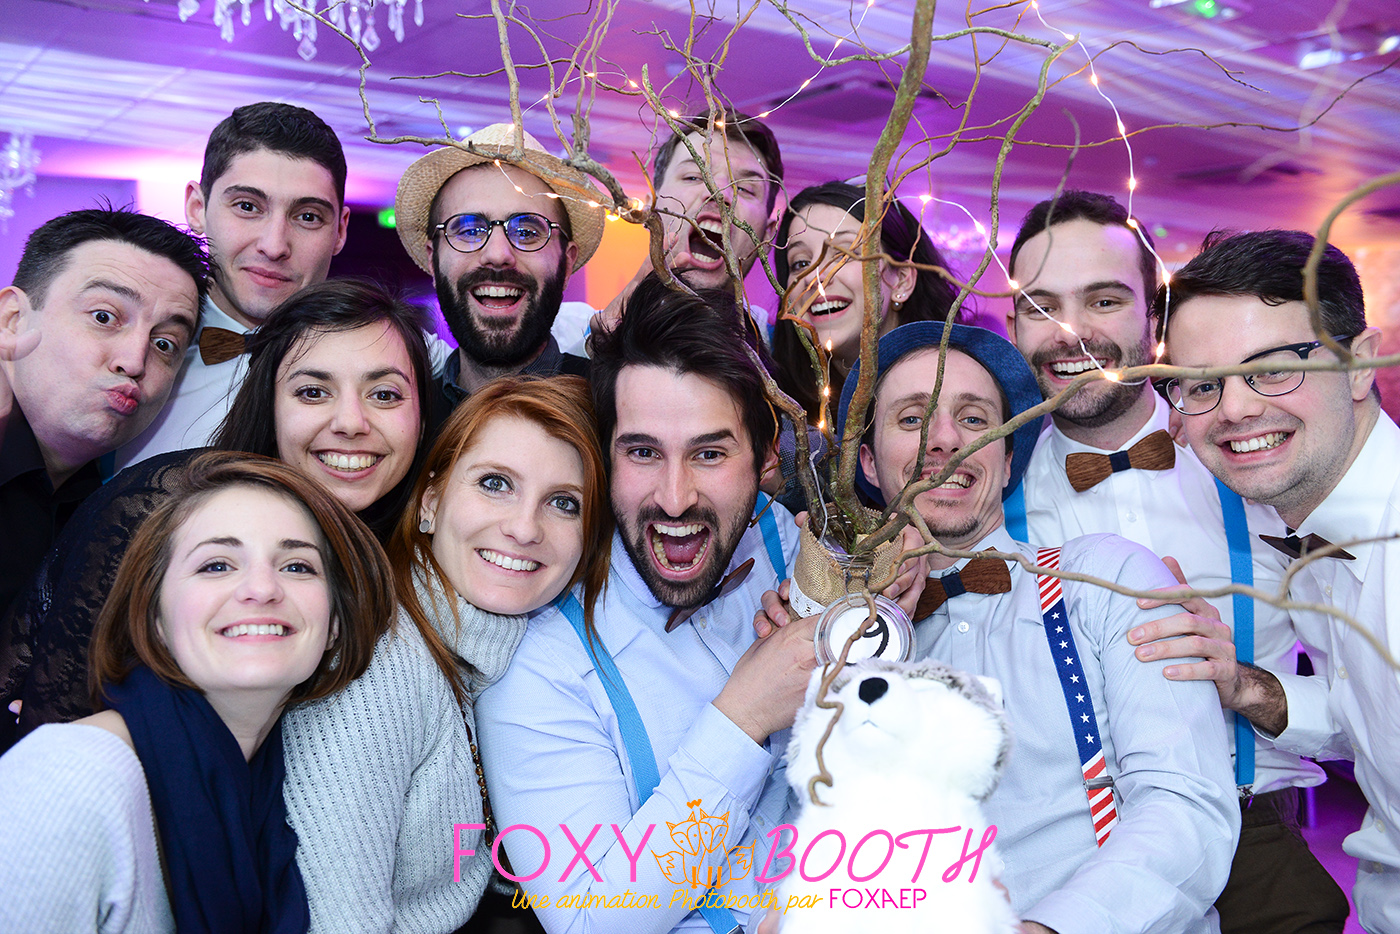 photobooth-dijon-bourgogne-foxaep-foxybooth-animation-photographe-1 (2)